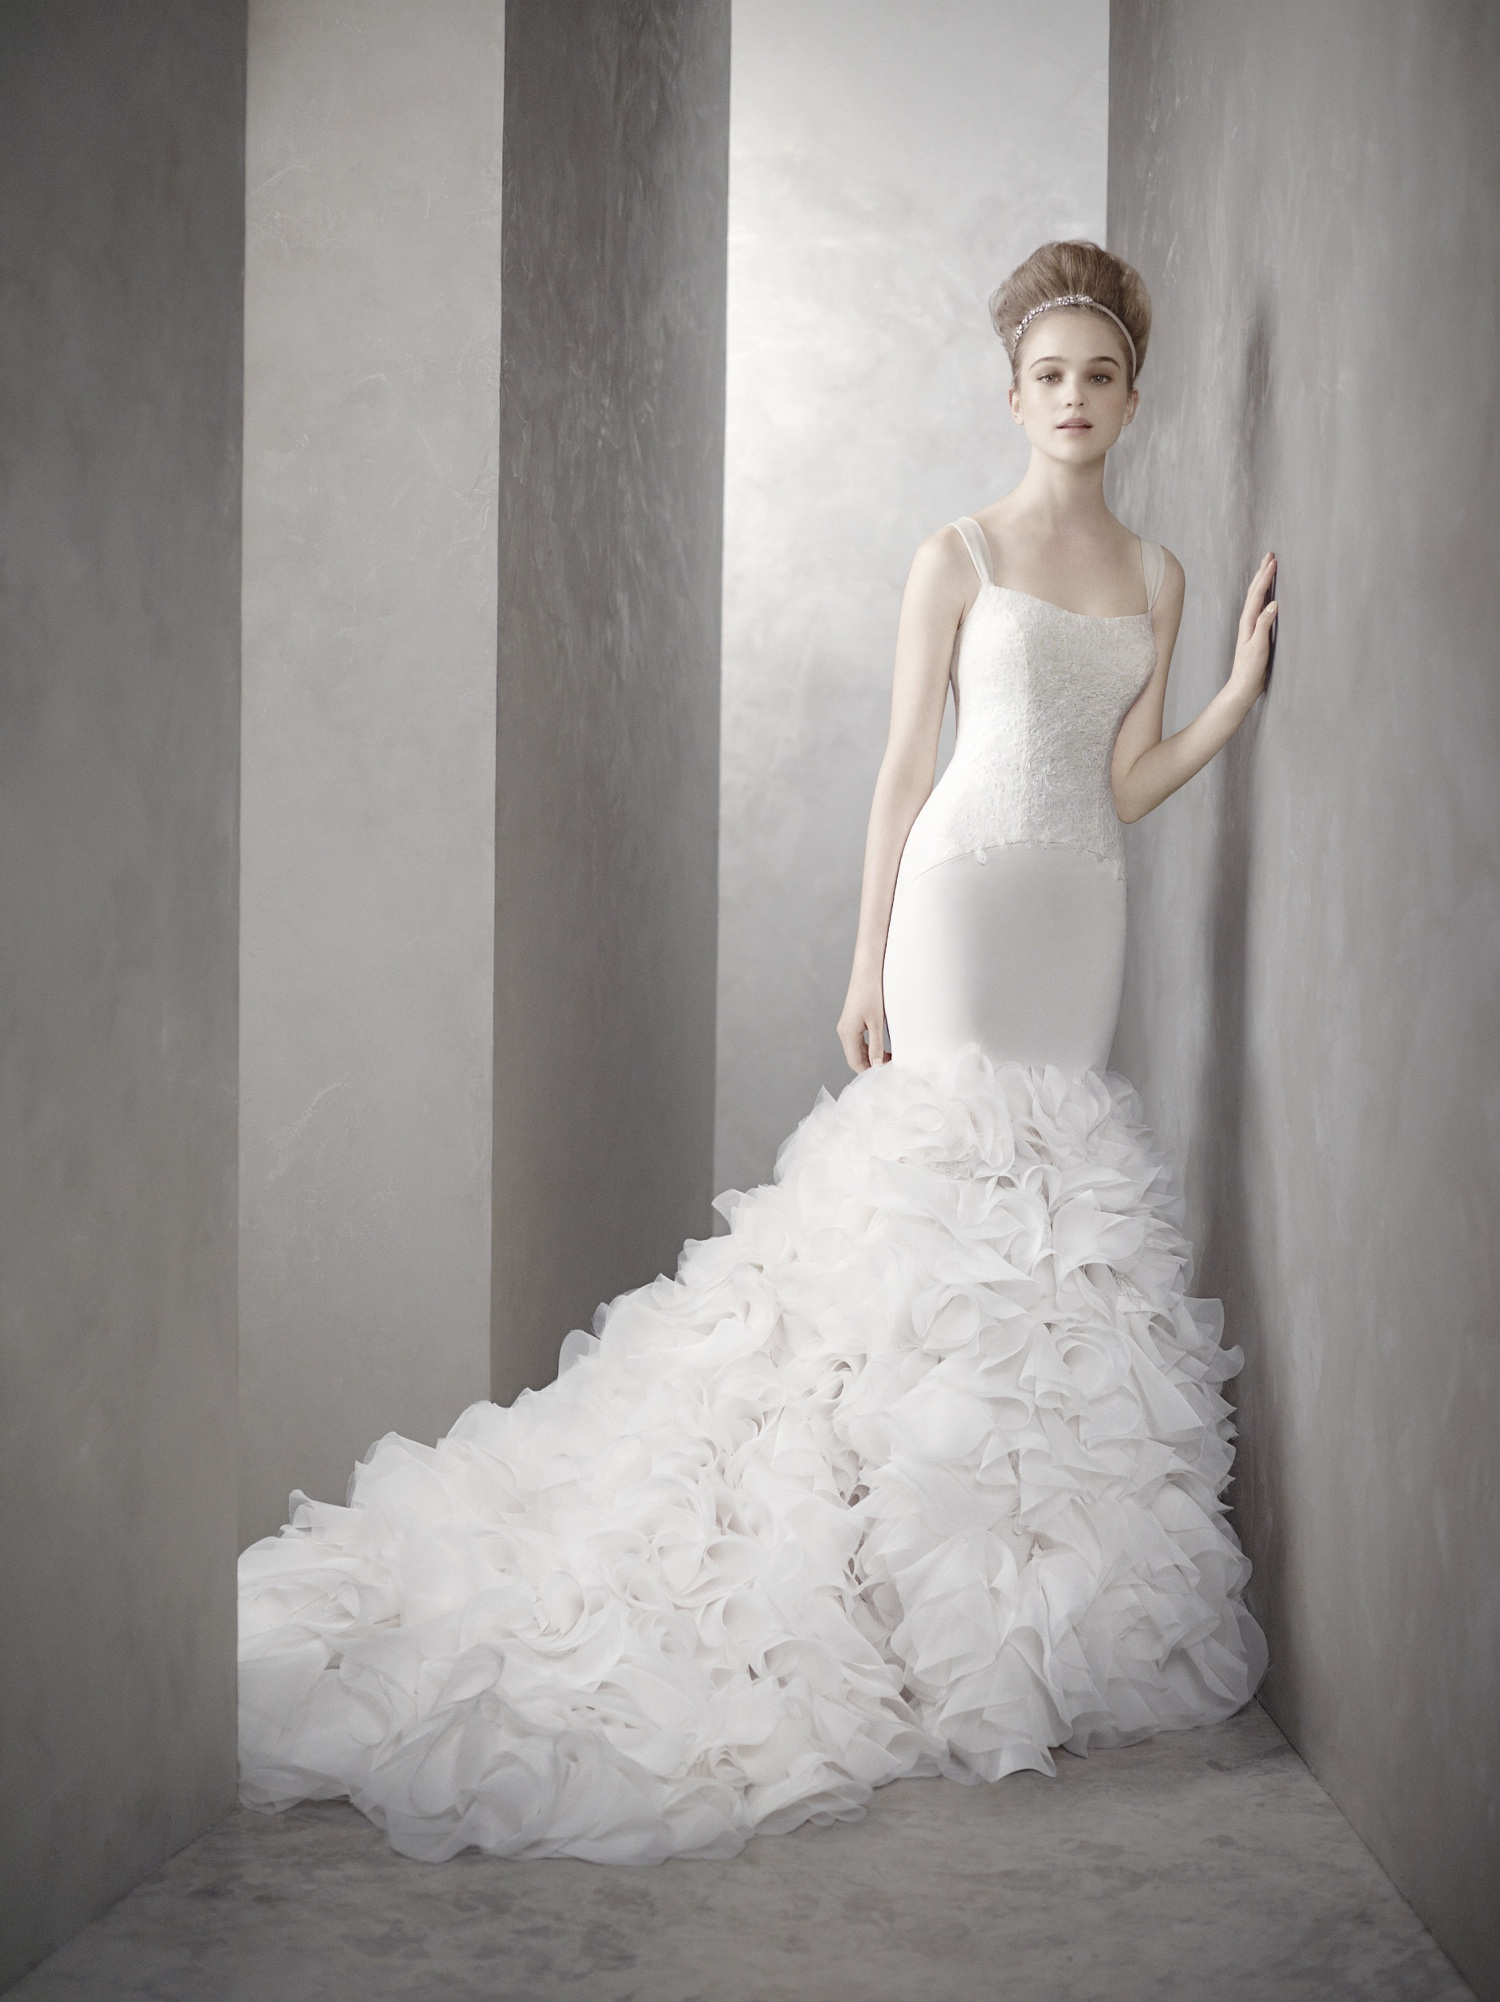 white-by-vera-wang-wedding-dresses-spring-2012-bridal-gown-kim-kardashian-dress-mermaid.original.jpg?1379117286